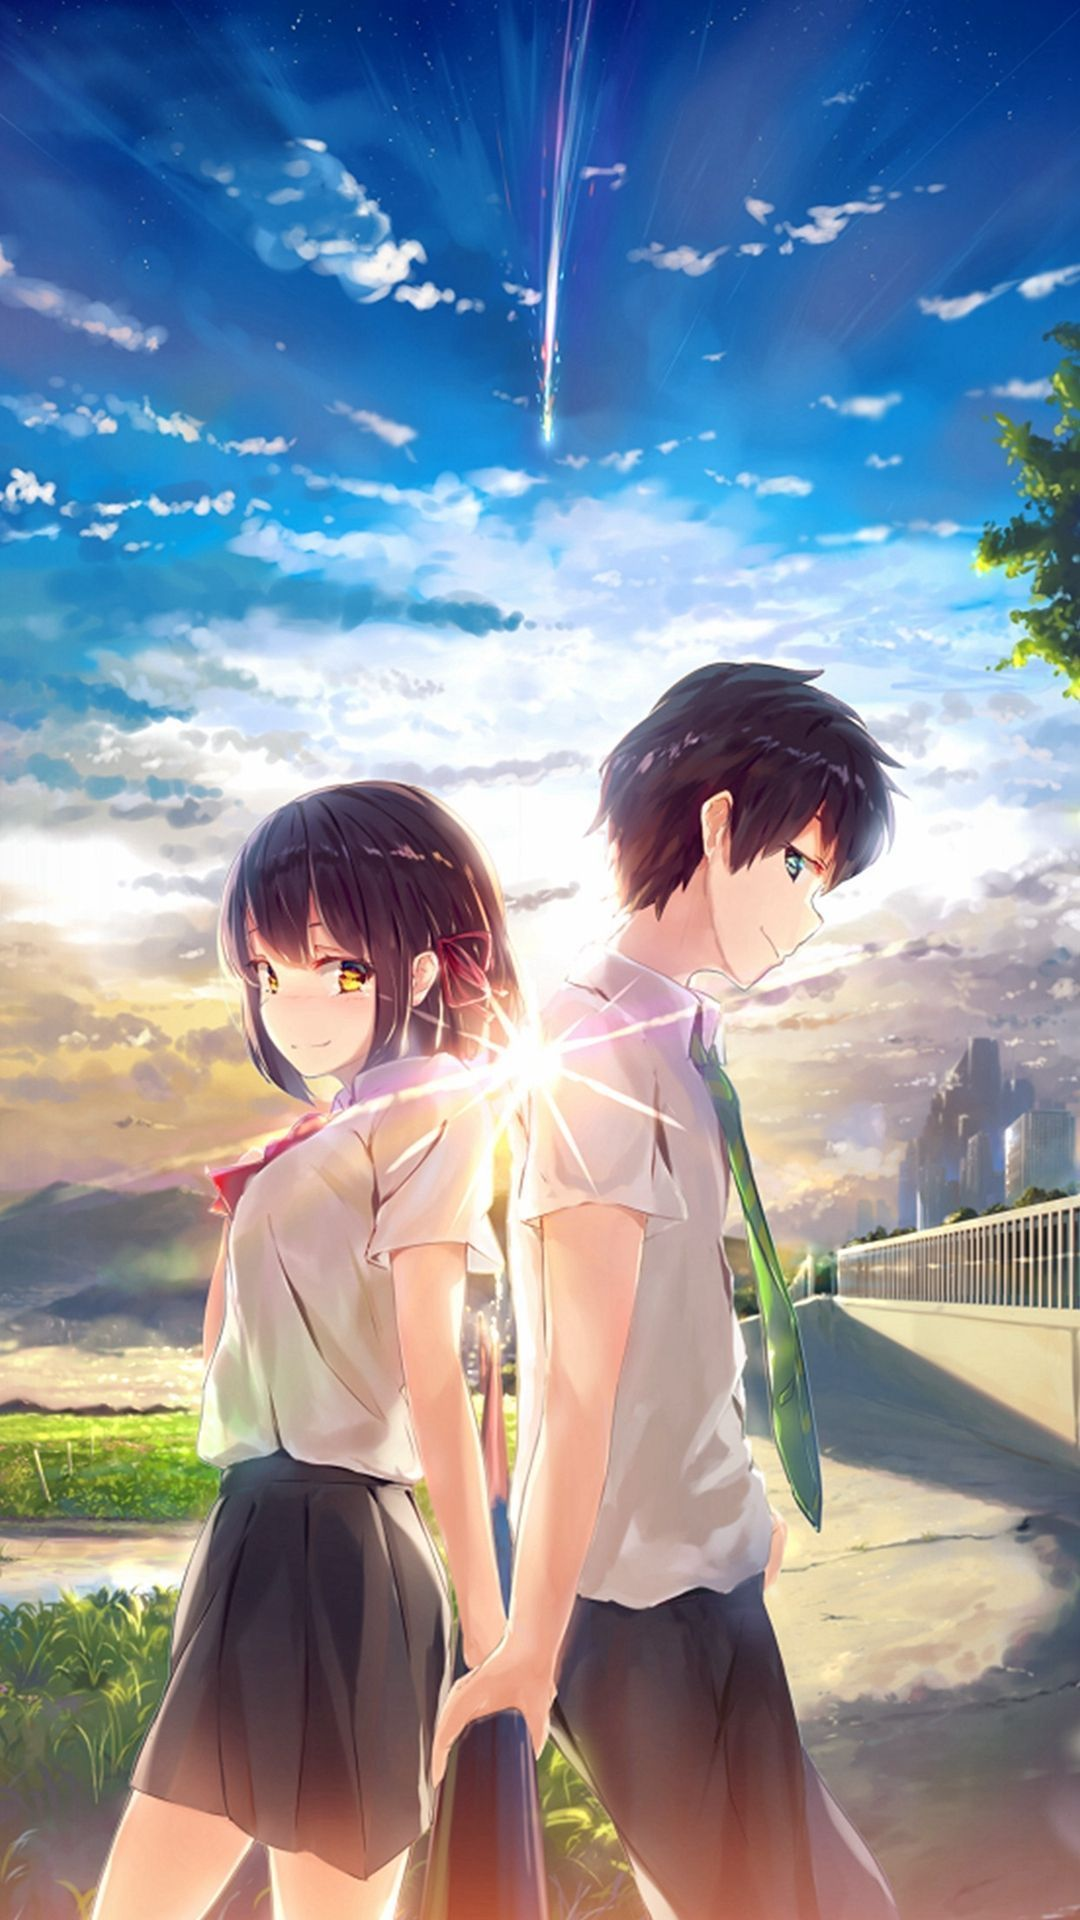 Anime Girl Cute With Boy Wallpapers Wallpaper Cave